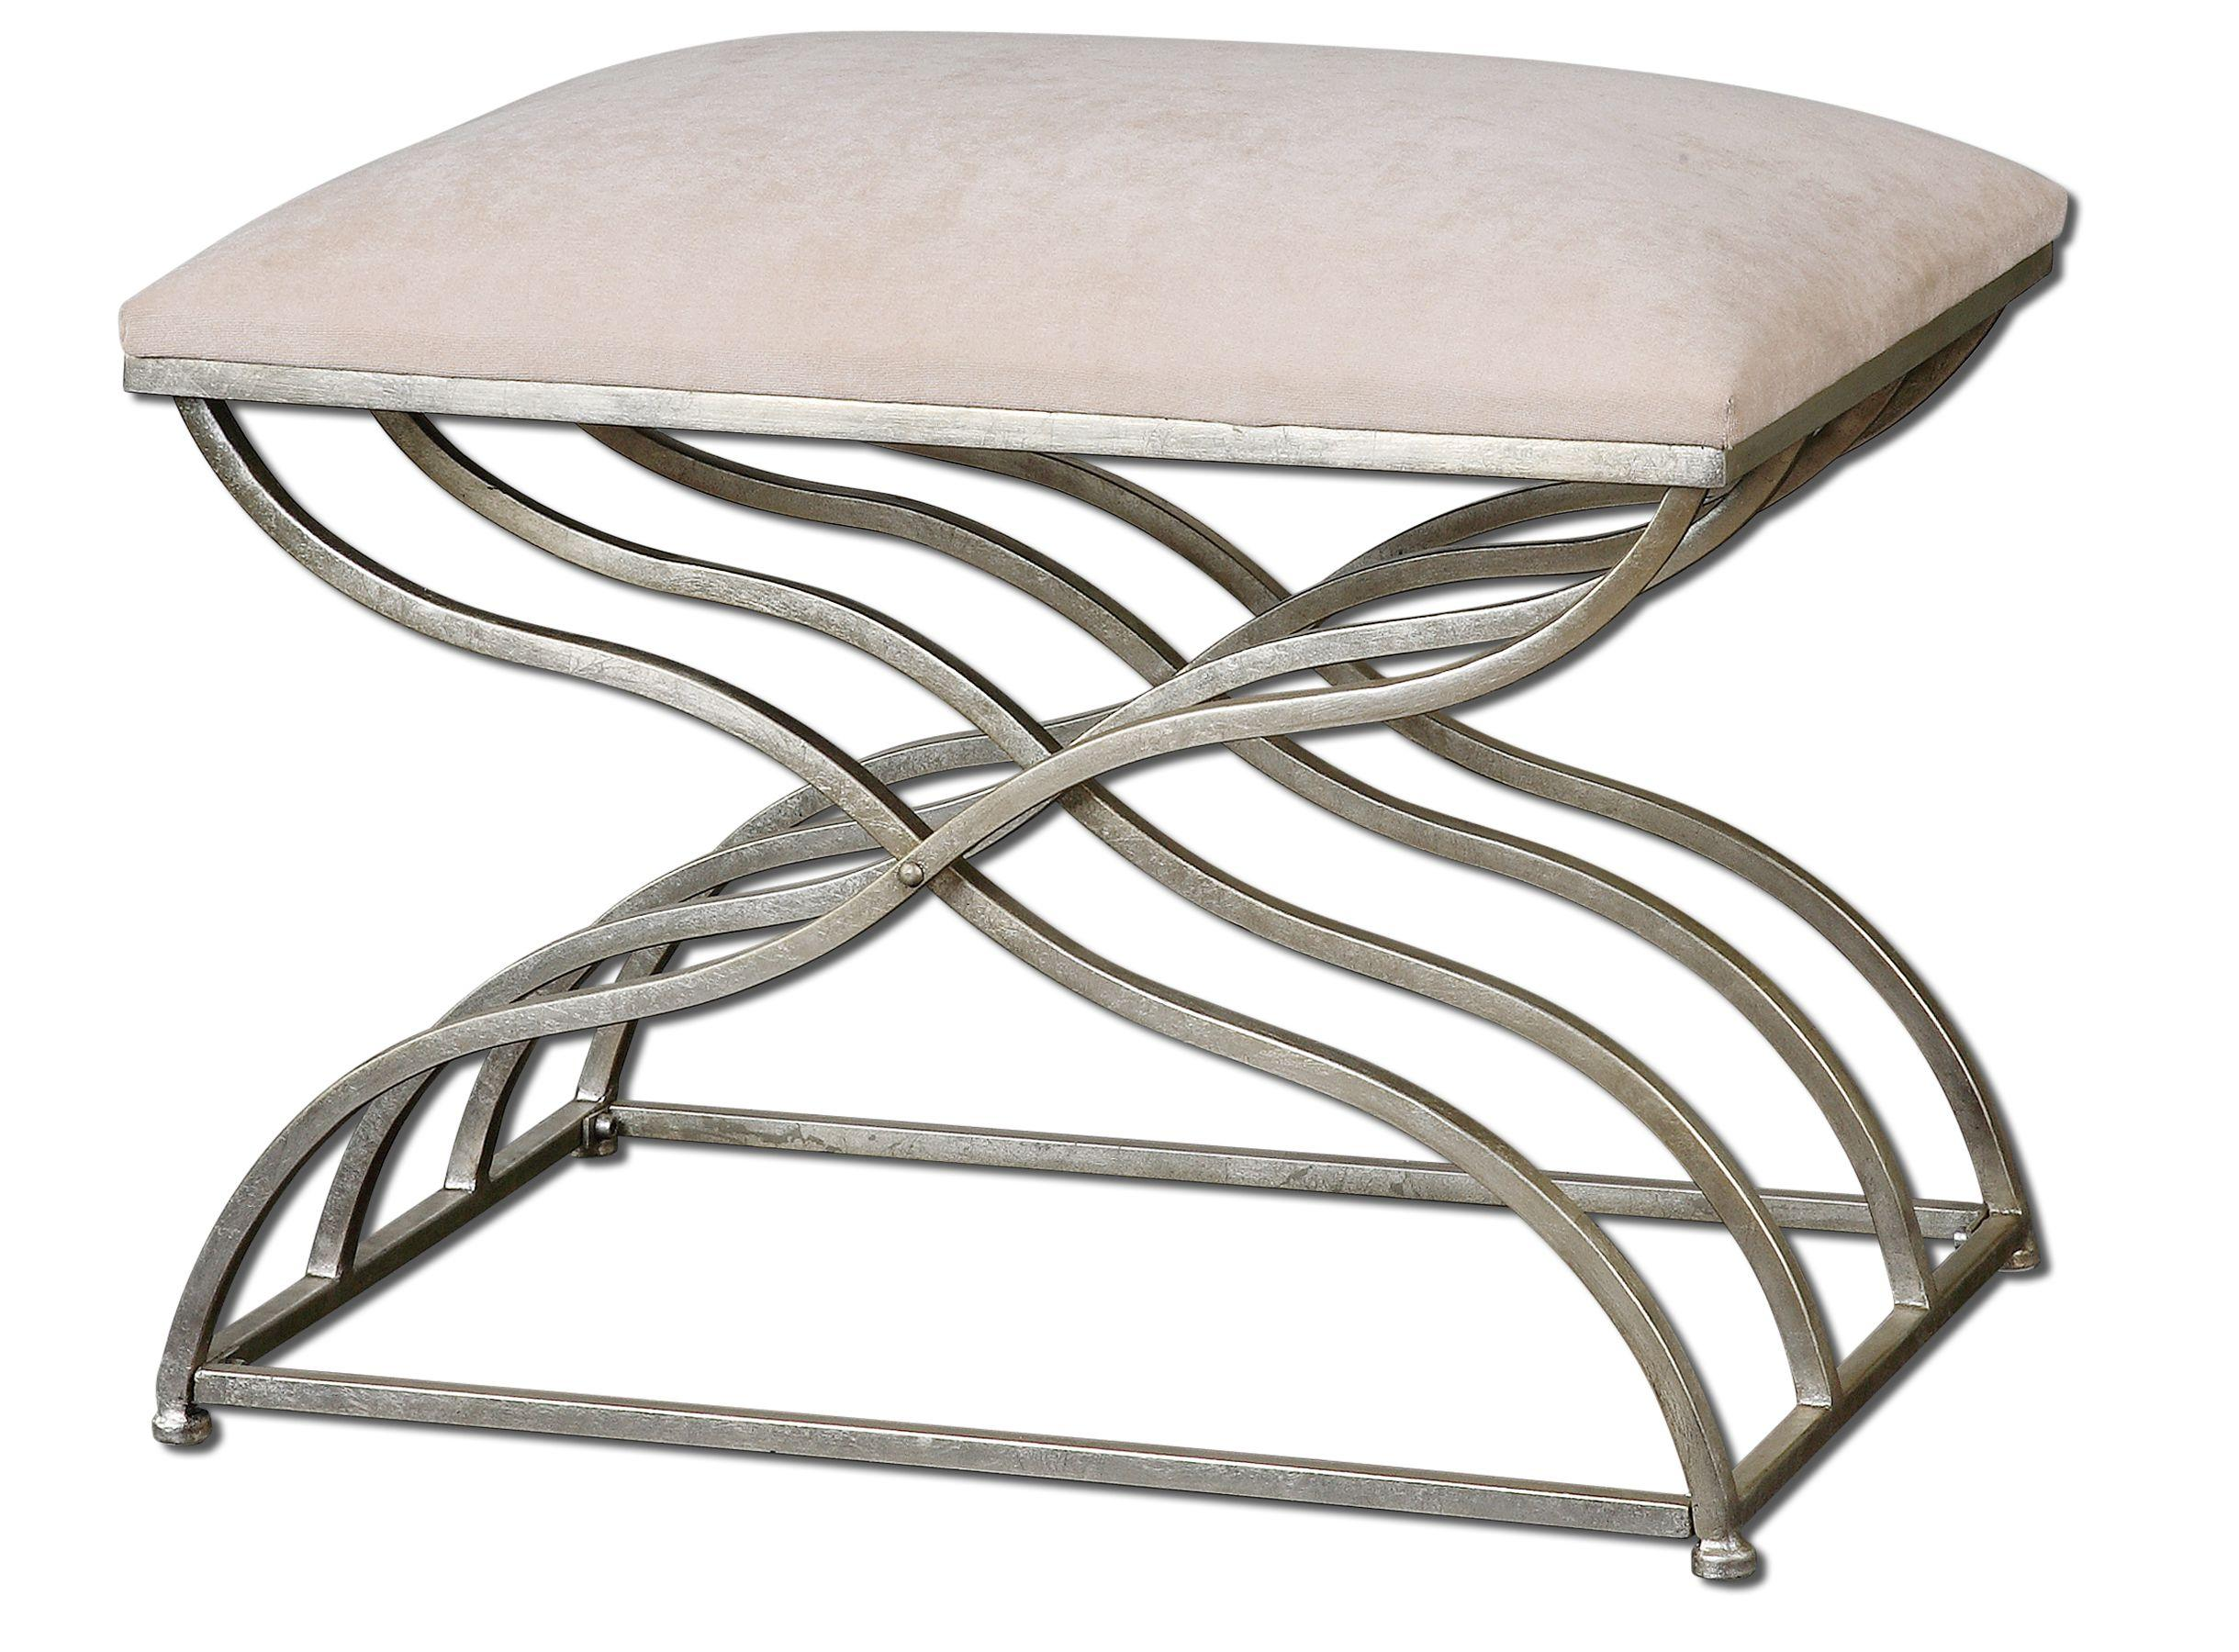 Accent Furniture - Benches Shea Small Bench by Uttermost at Goffena Furniture & Mattress Center